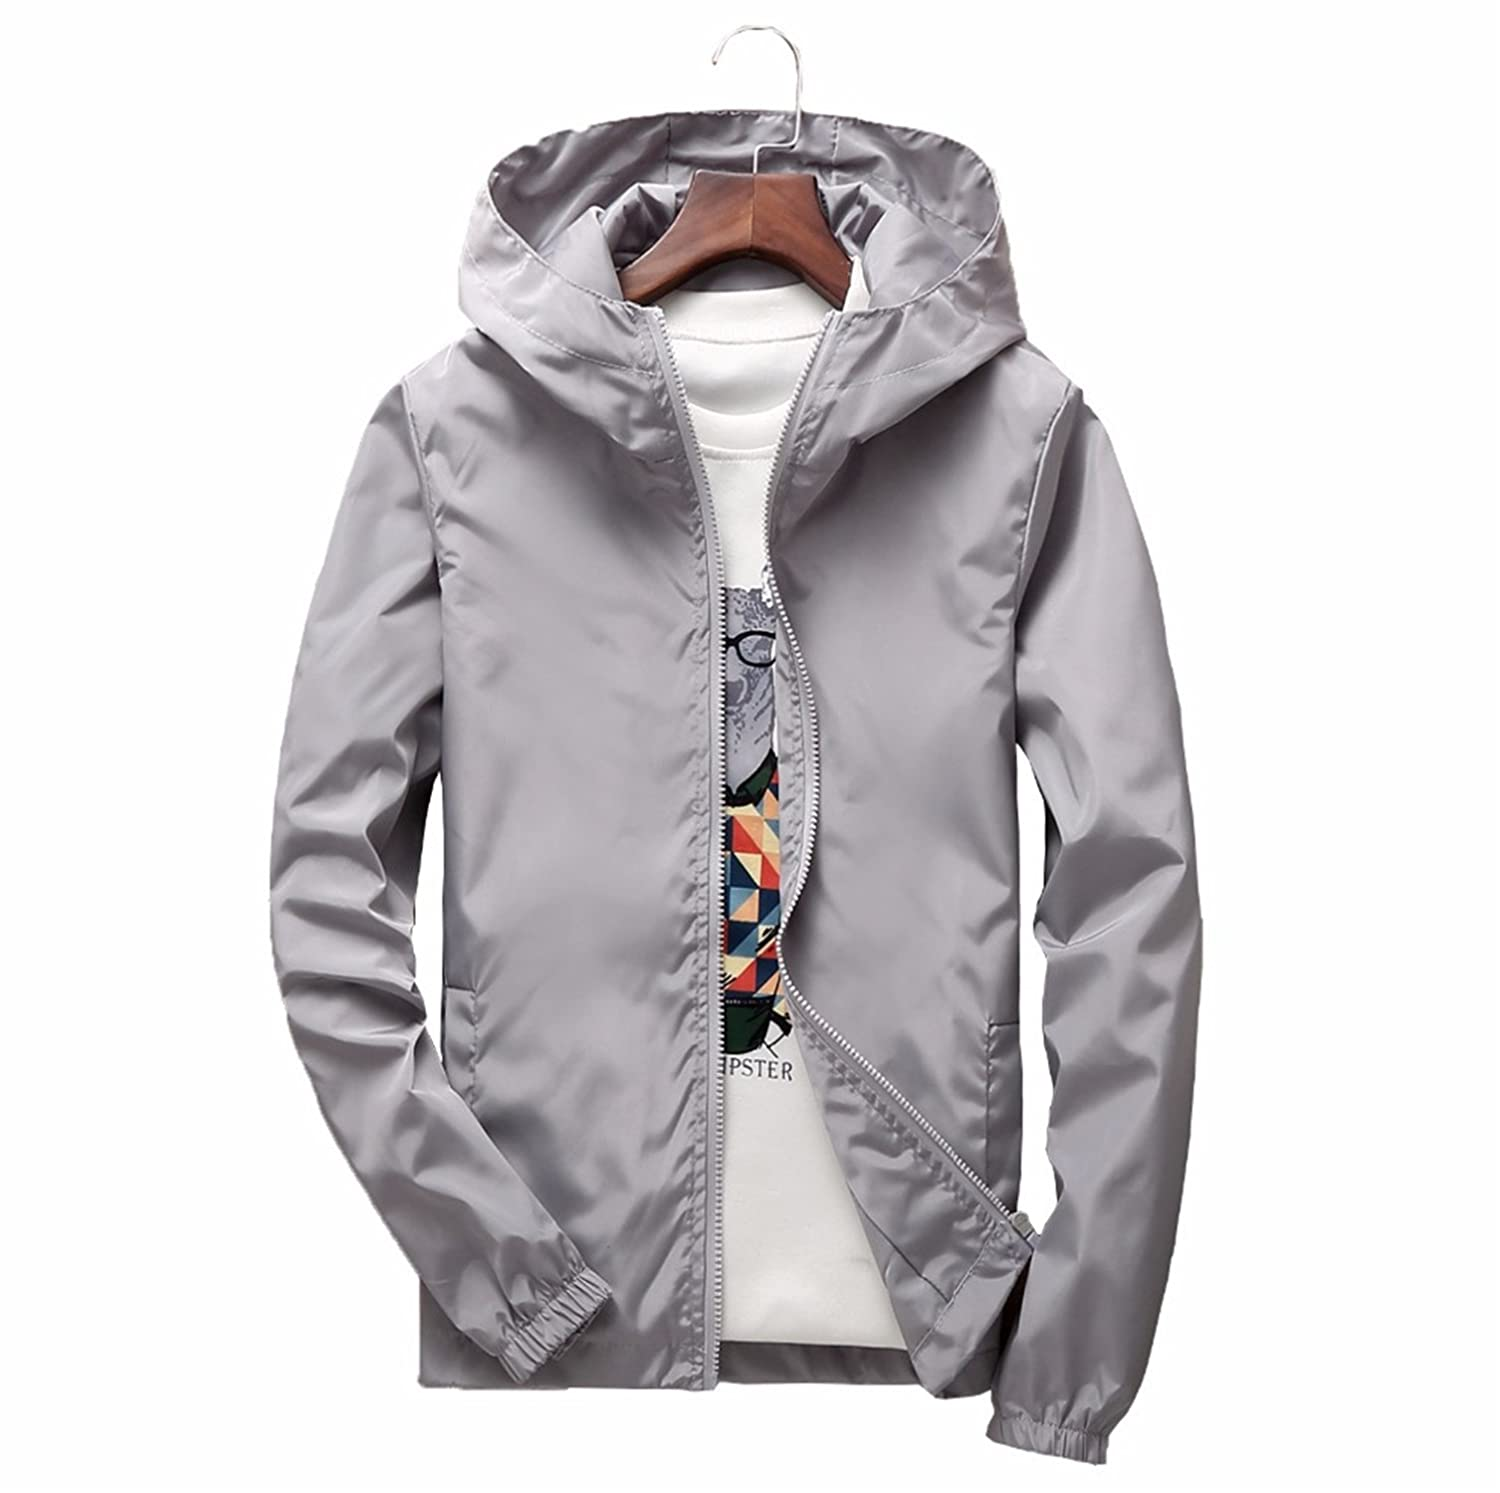 Feroni 2018 Plus Size Mens Spring Summer Hooded Jacket Waterproof Bomber Jackets Male Casual Jacket Coat Outwear Chaqueta at Amazon Mens Clothing store: